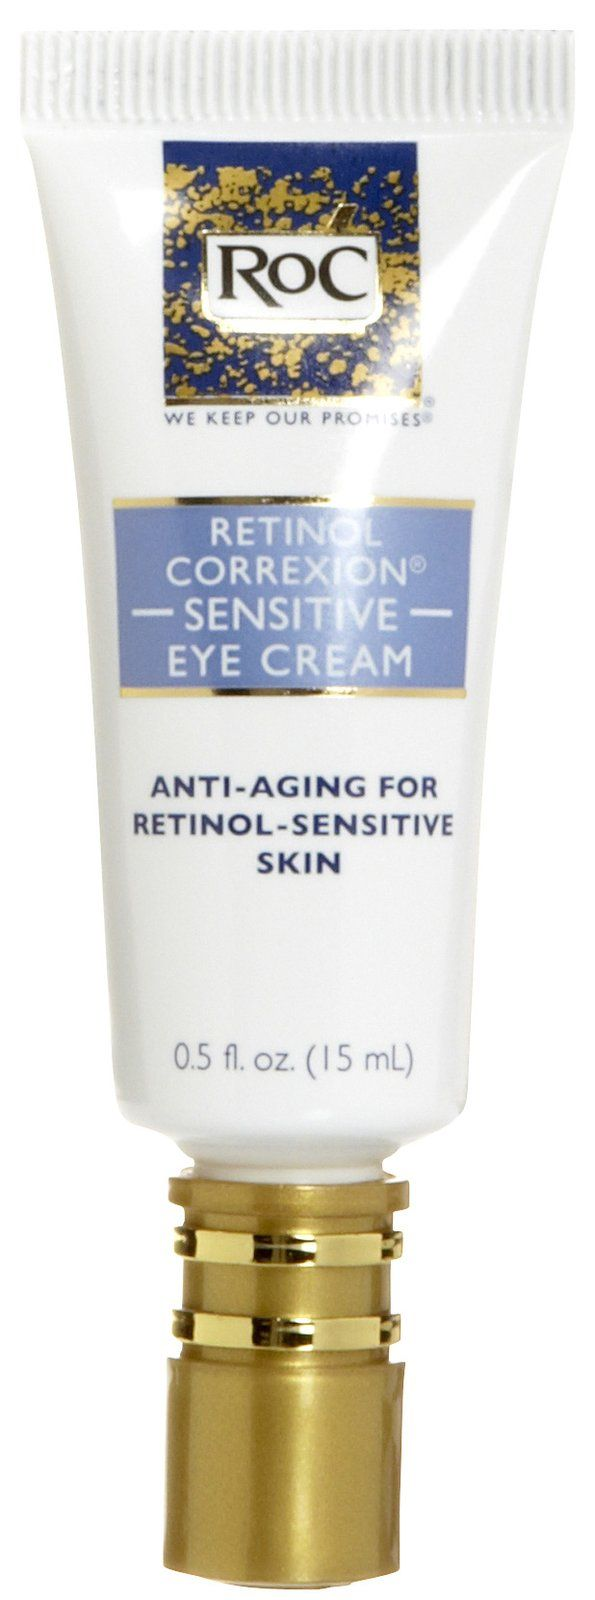 RoC Retinol Correxion Sensitive Eye Cream is an innovative product that helps fight against aging skin. 2012 Best of Beauty Award Winner. @Allure Magazine #beautycentral